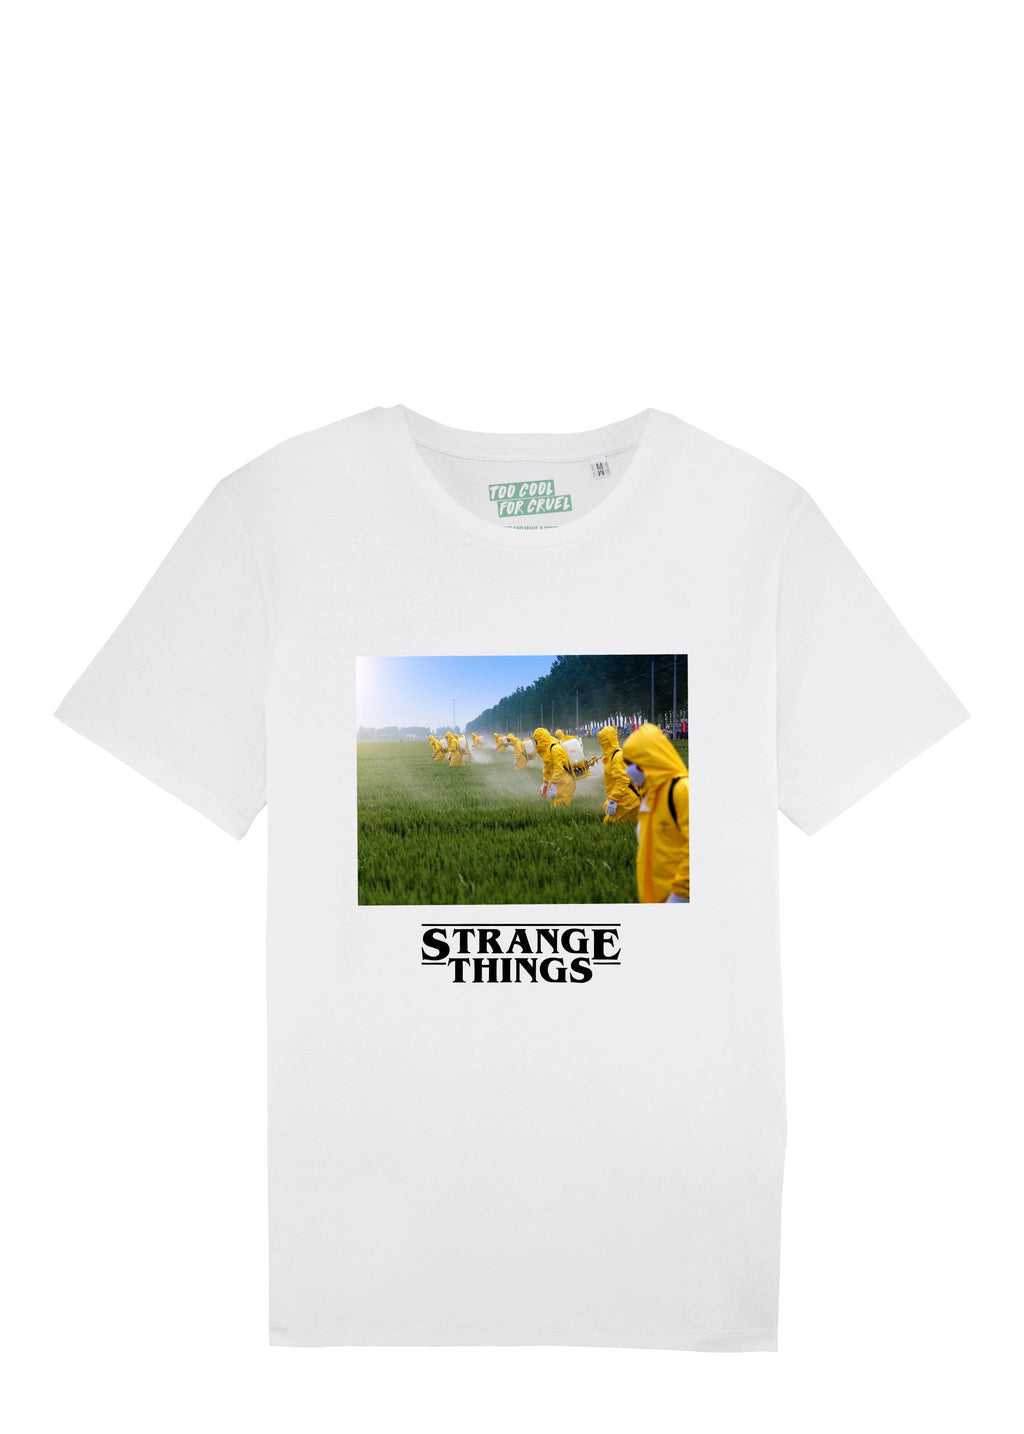 STRANGE THINGS SHIRT (UNISEX)